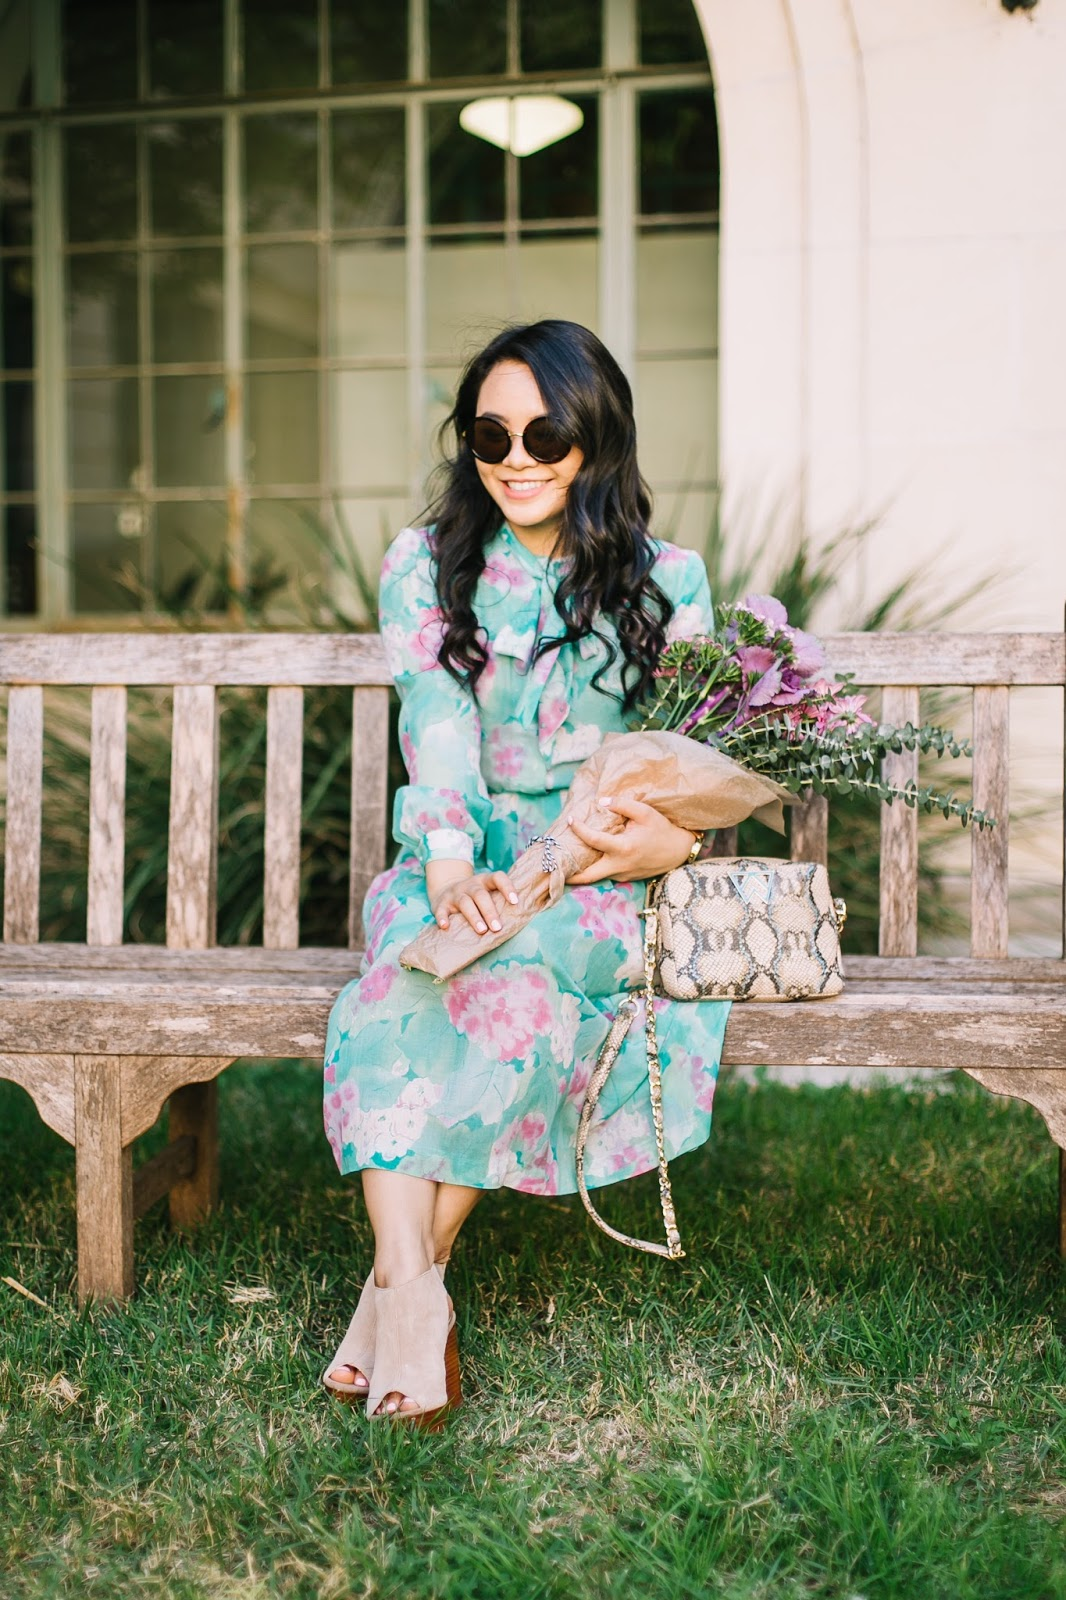 round sunglasses and vintage floral dress